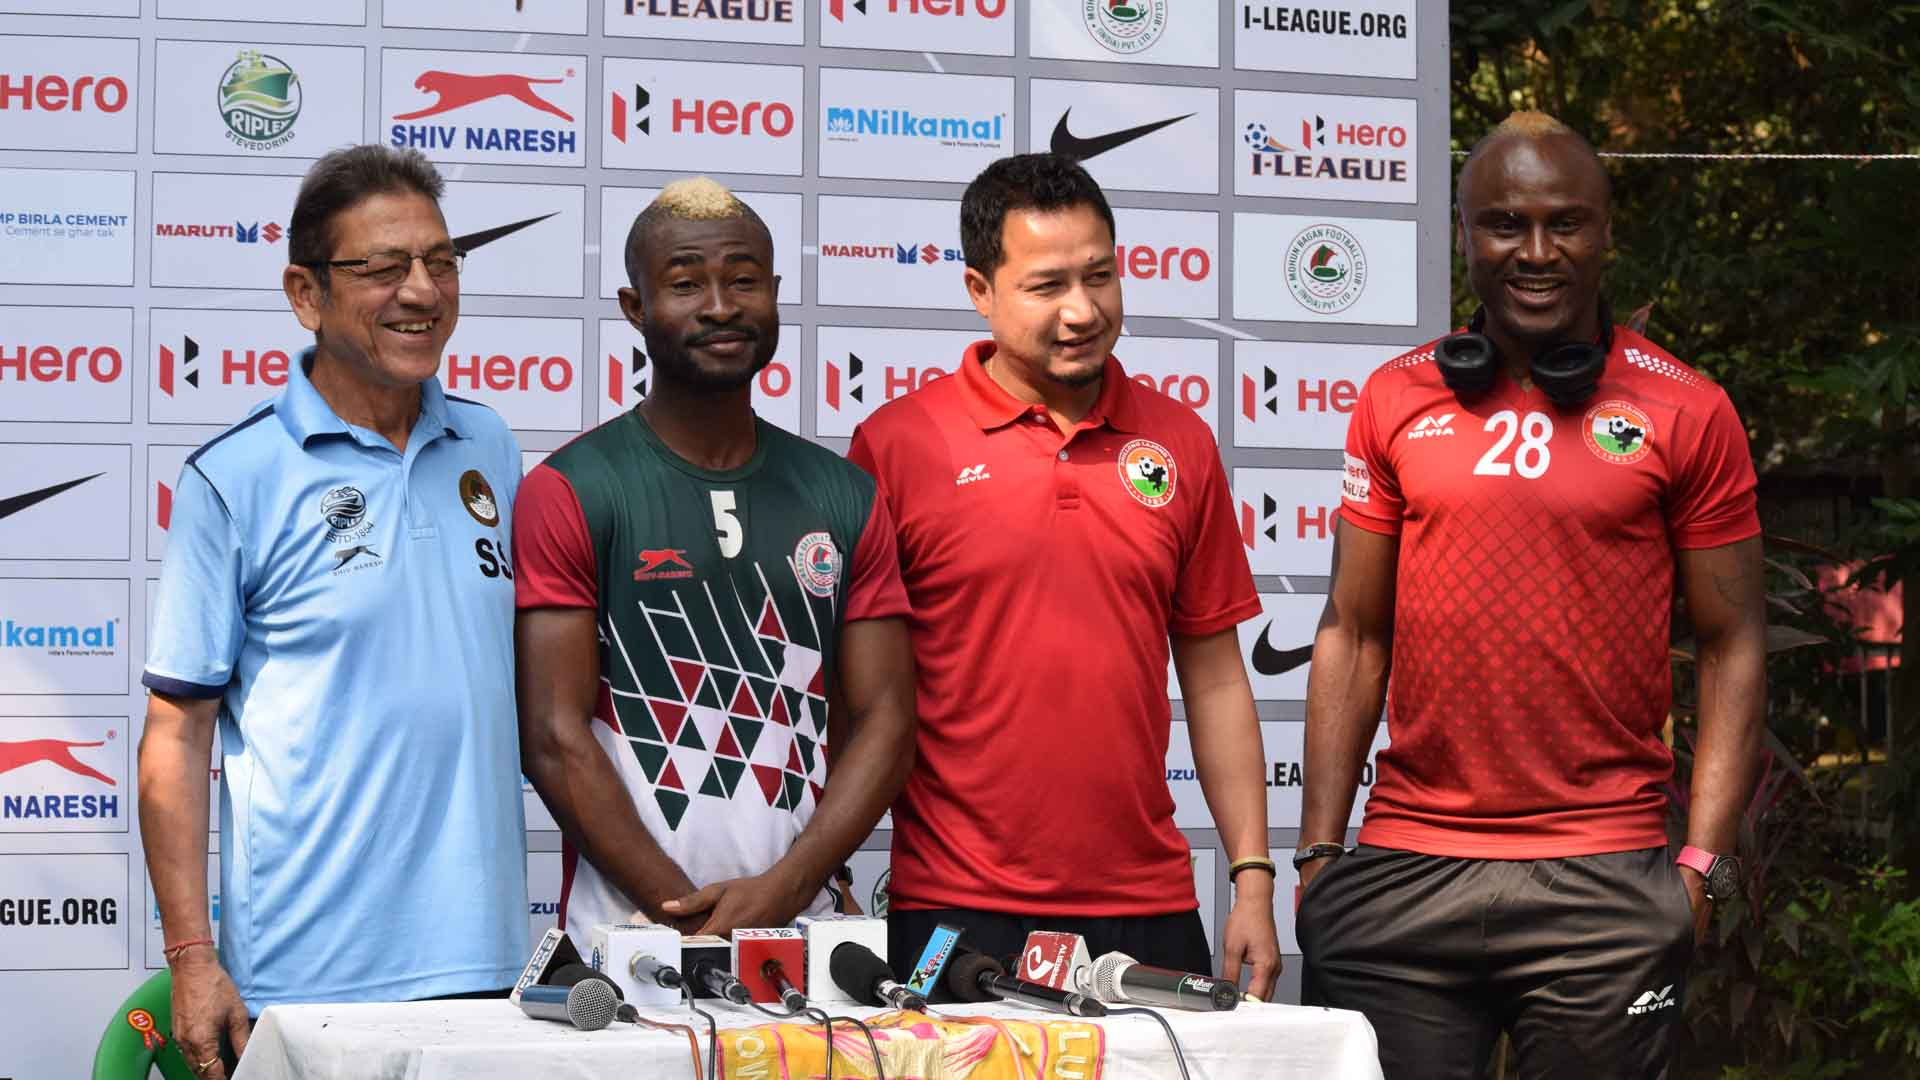 I-League 2017: Advantage Lajong if Sony Norde and Kromah miss out, says Bobby Nongbet